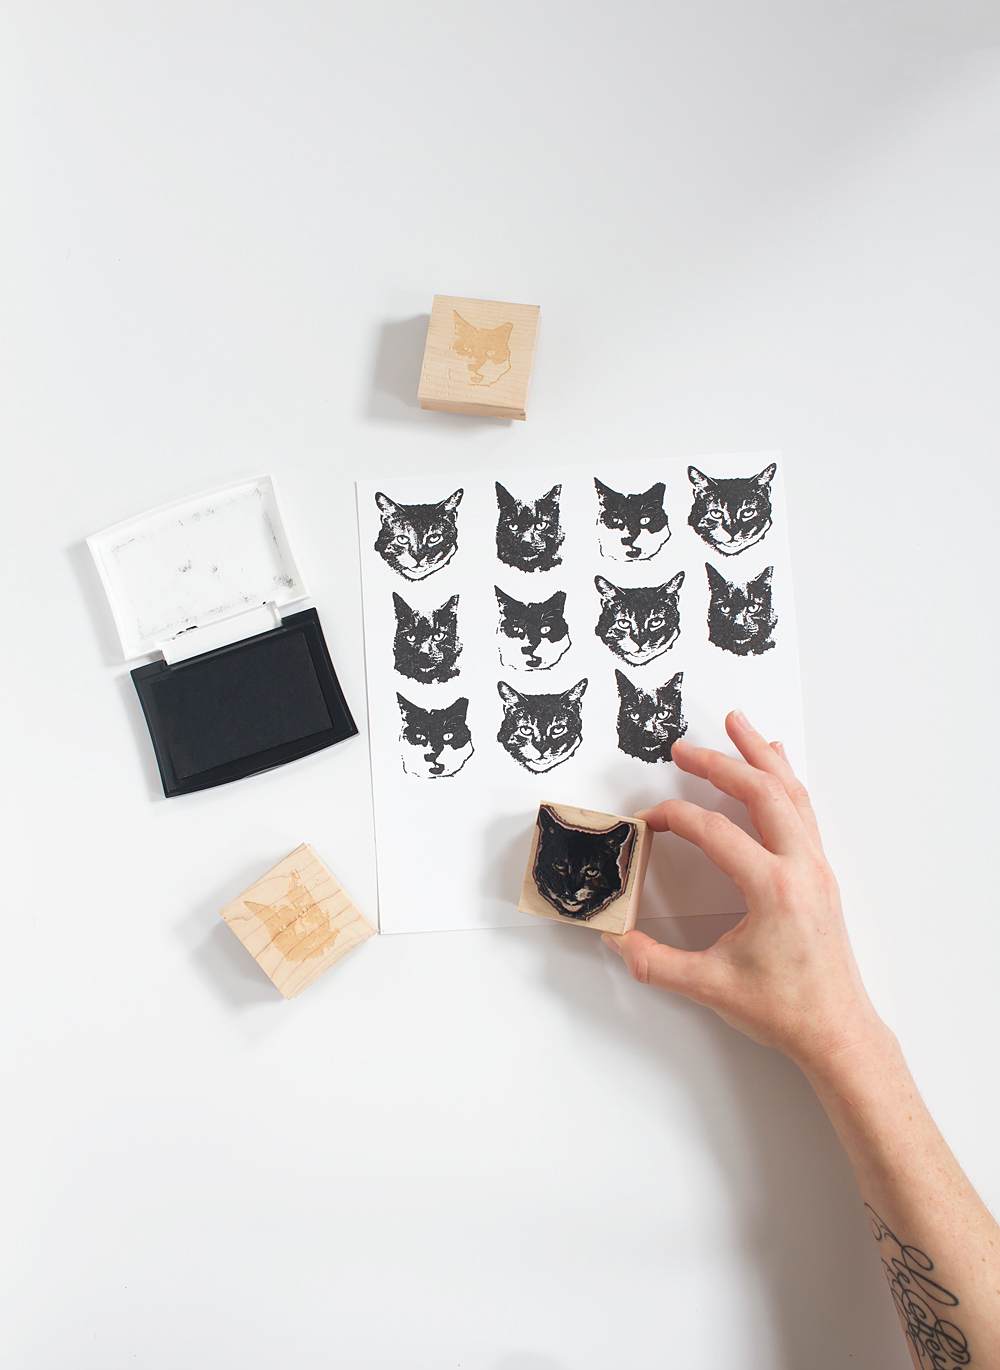 See how easy it is to turn a photo into a custom stamp so you can stamp your own DIY wrapping paper, or anything else you want! Makes a great gift too.